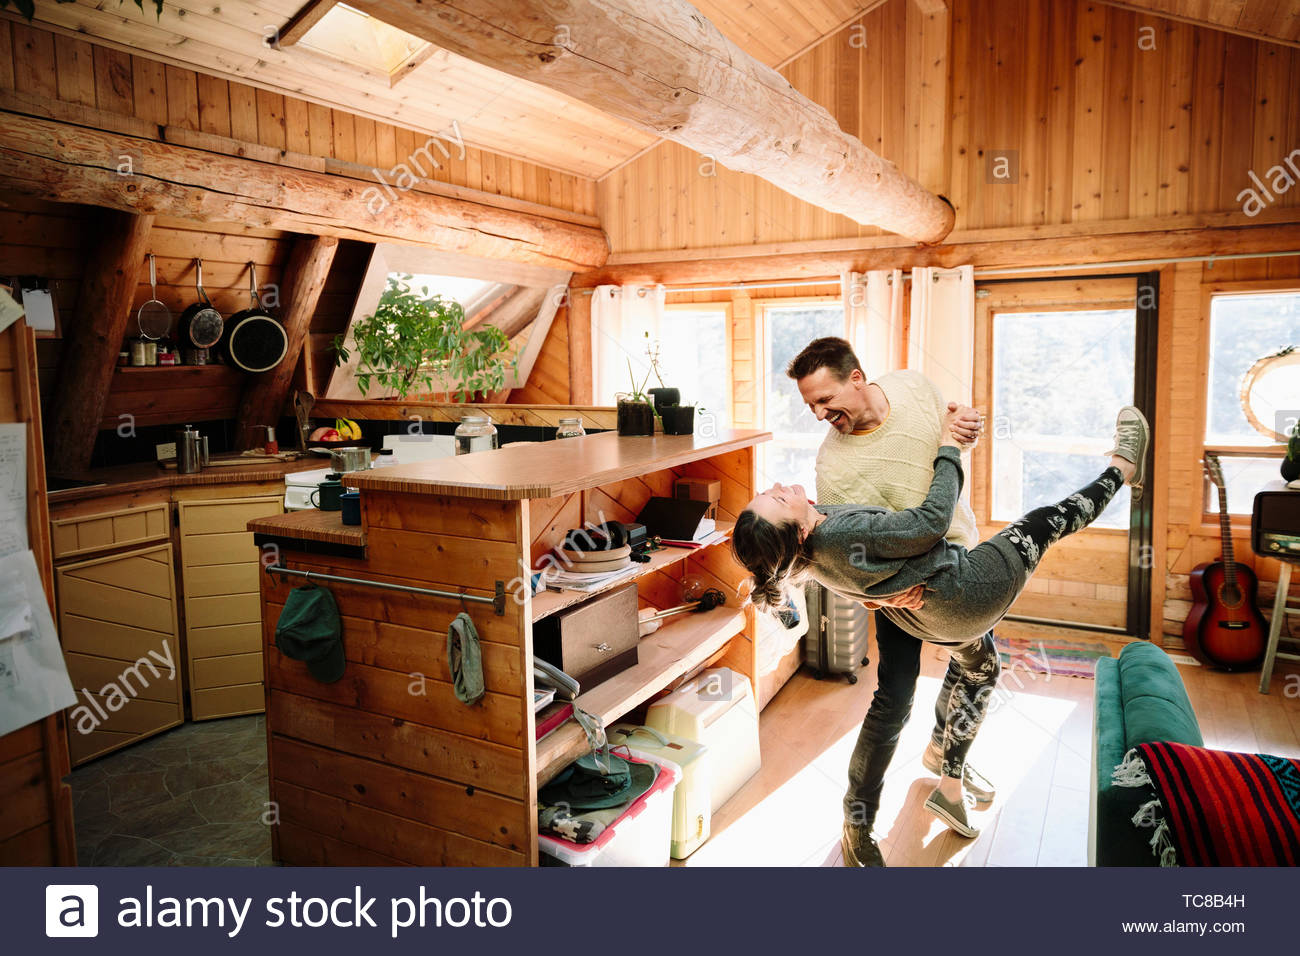 Playful couple dancing in cabin Stock Photo